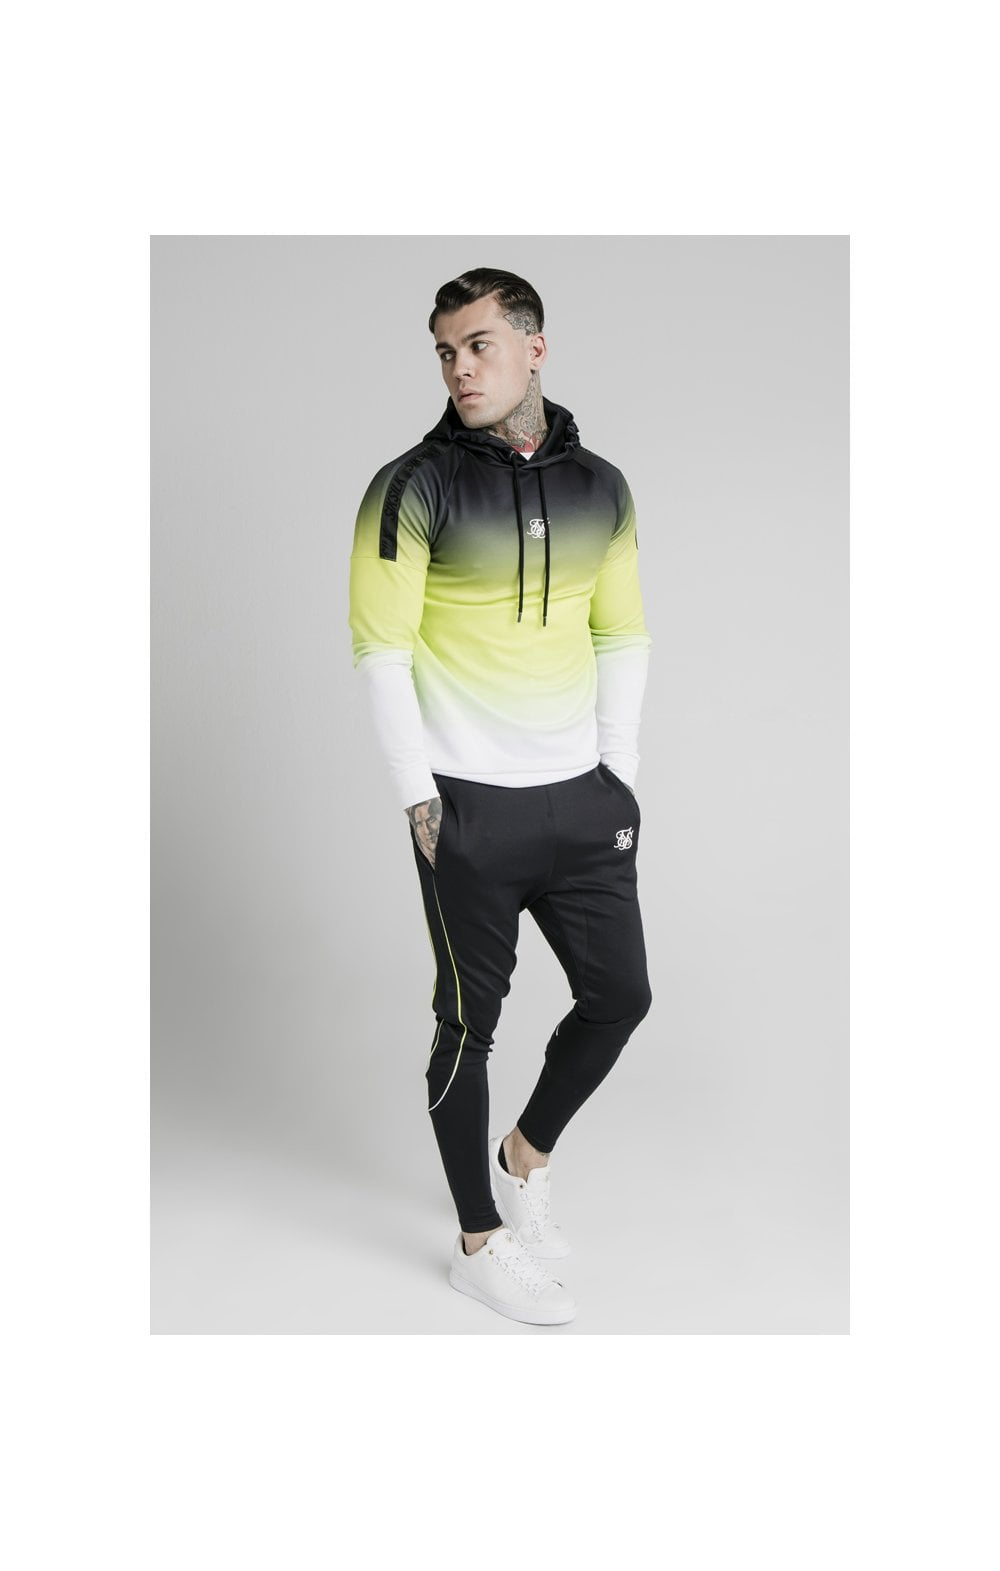 Load image into Gallery viewer, SikSilk Vapour Tri-Fade Overhead Hoodie - Black, Fluro & White (2)